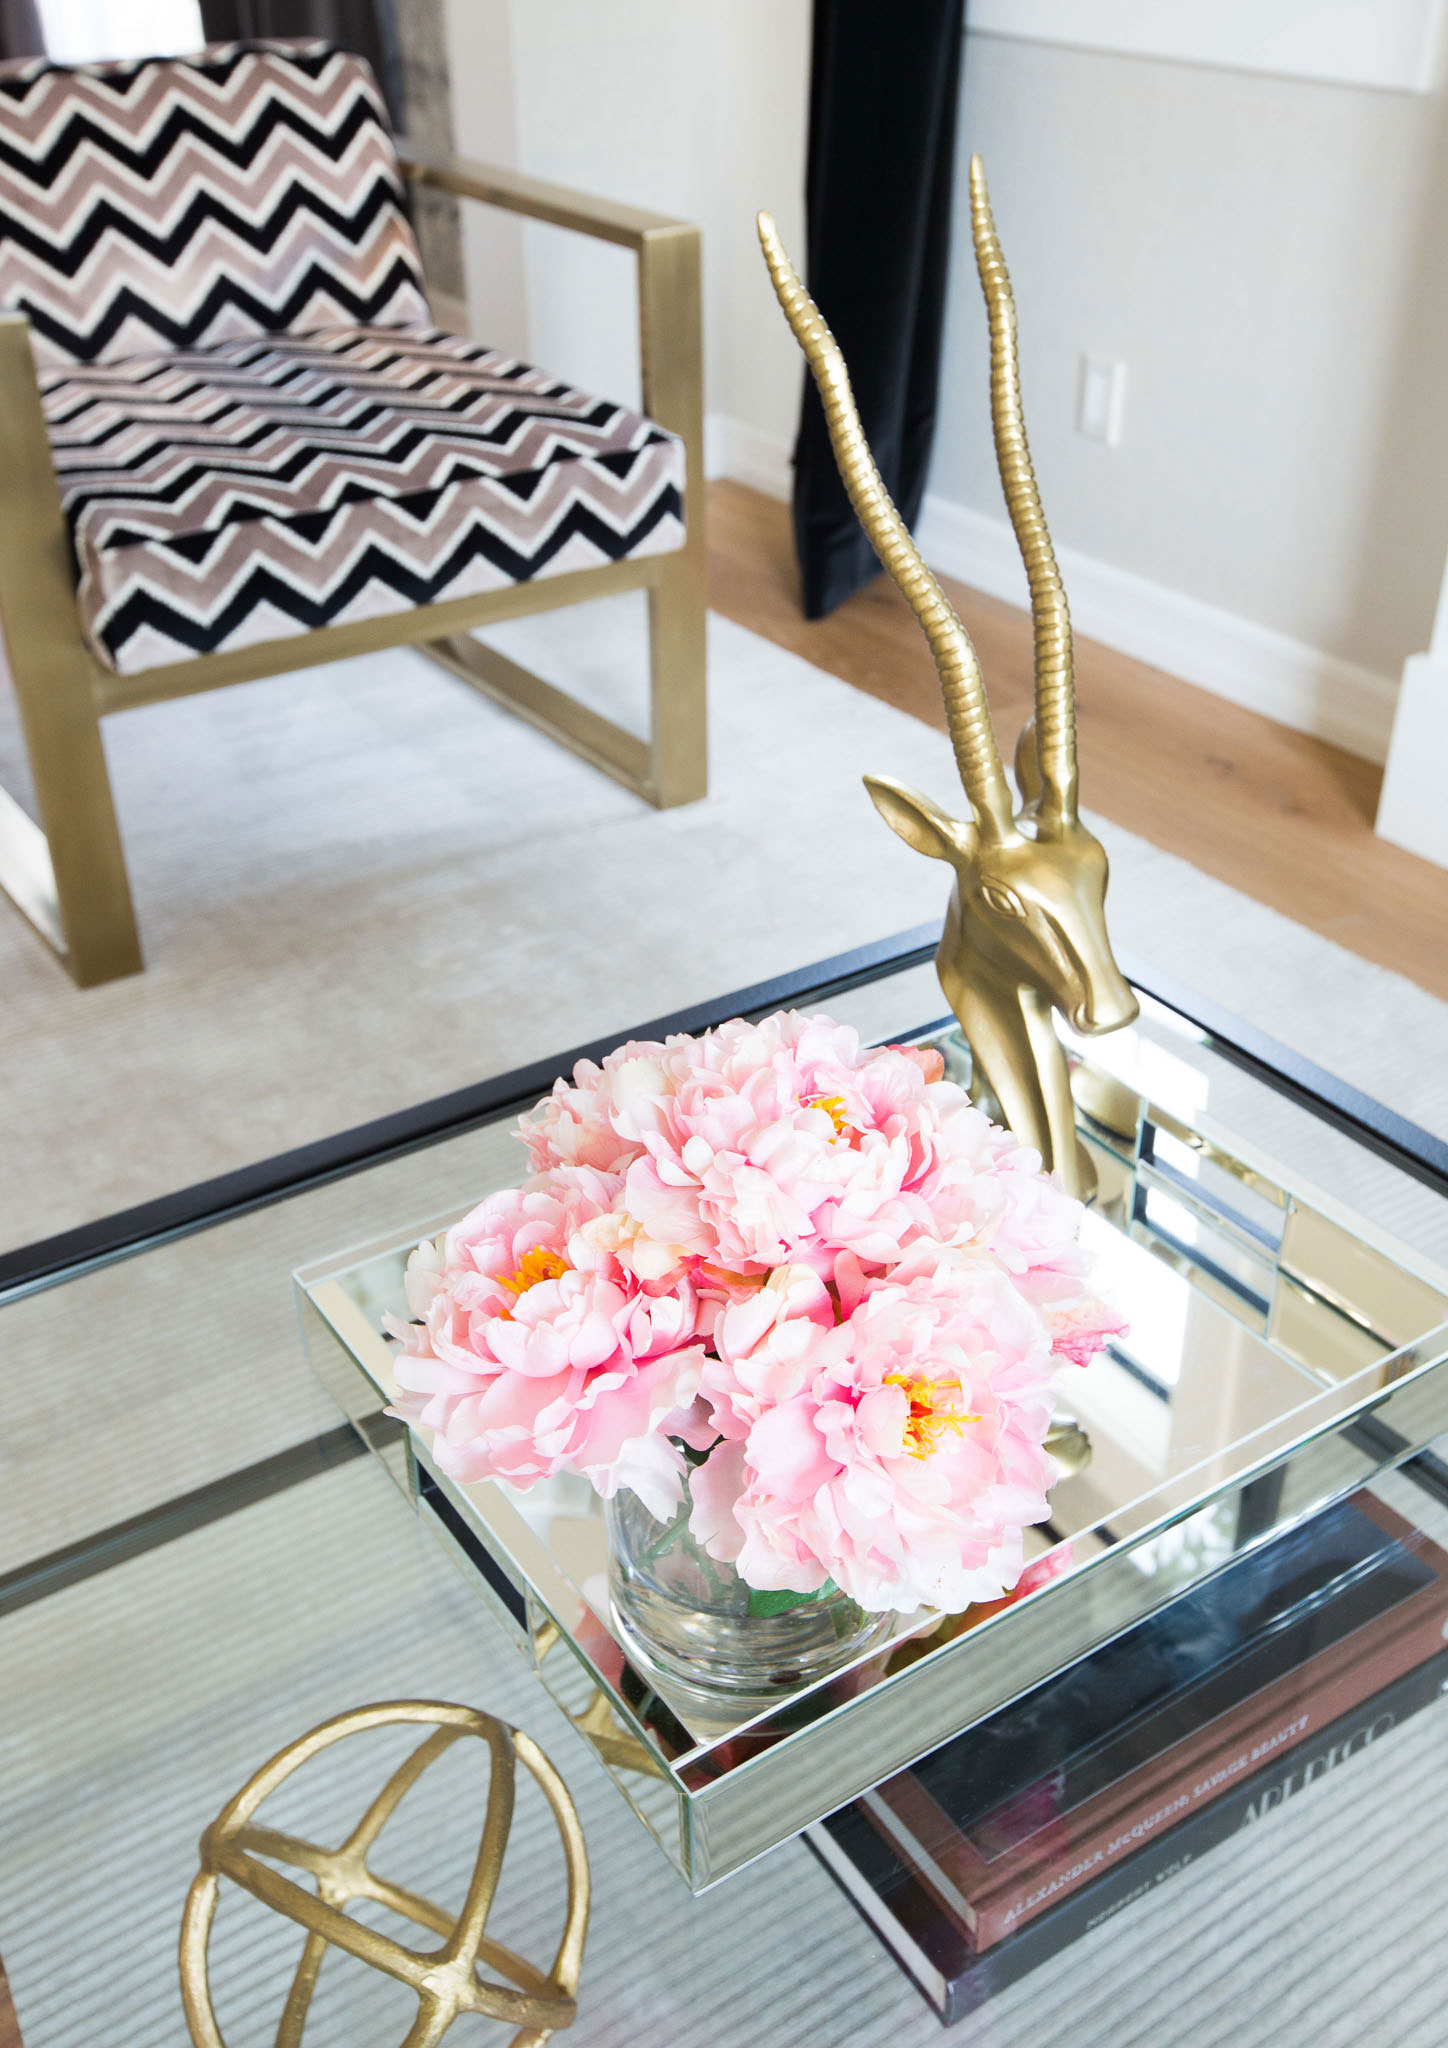 11-03-16-HomeTour-HomePolish-6.jpg